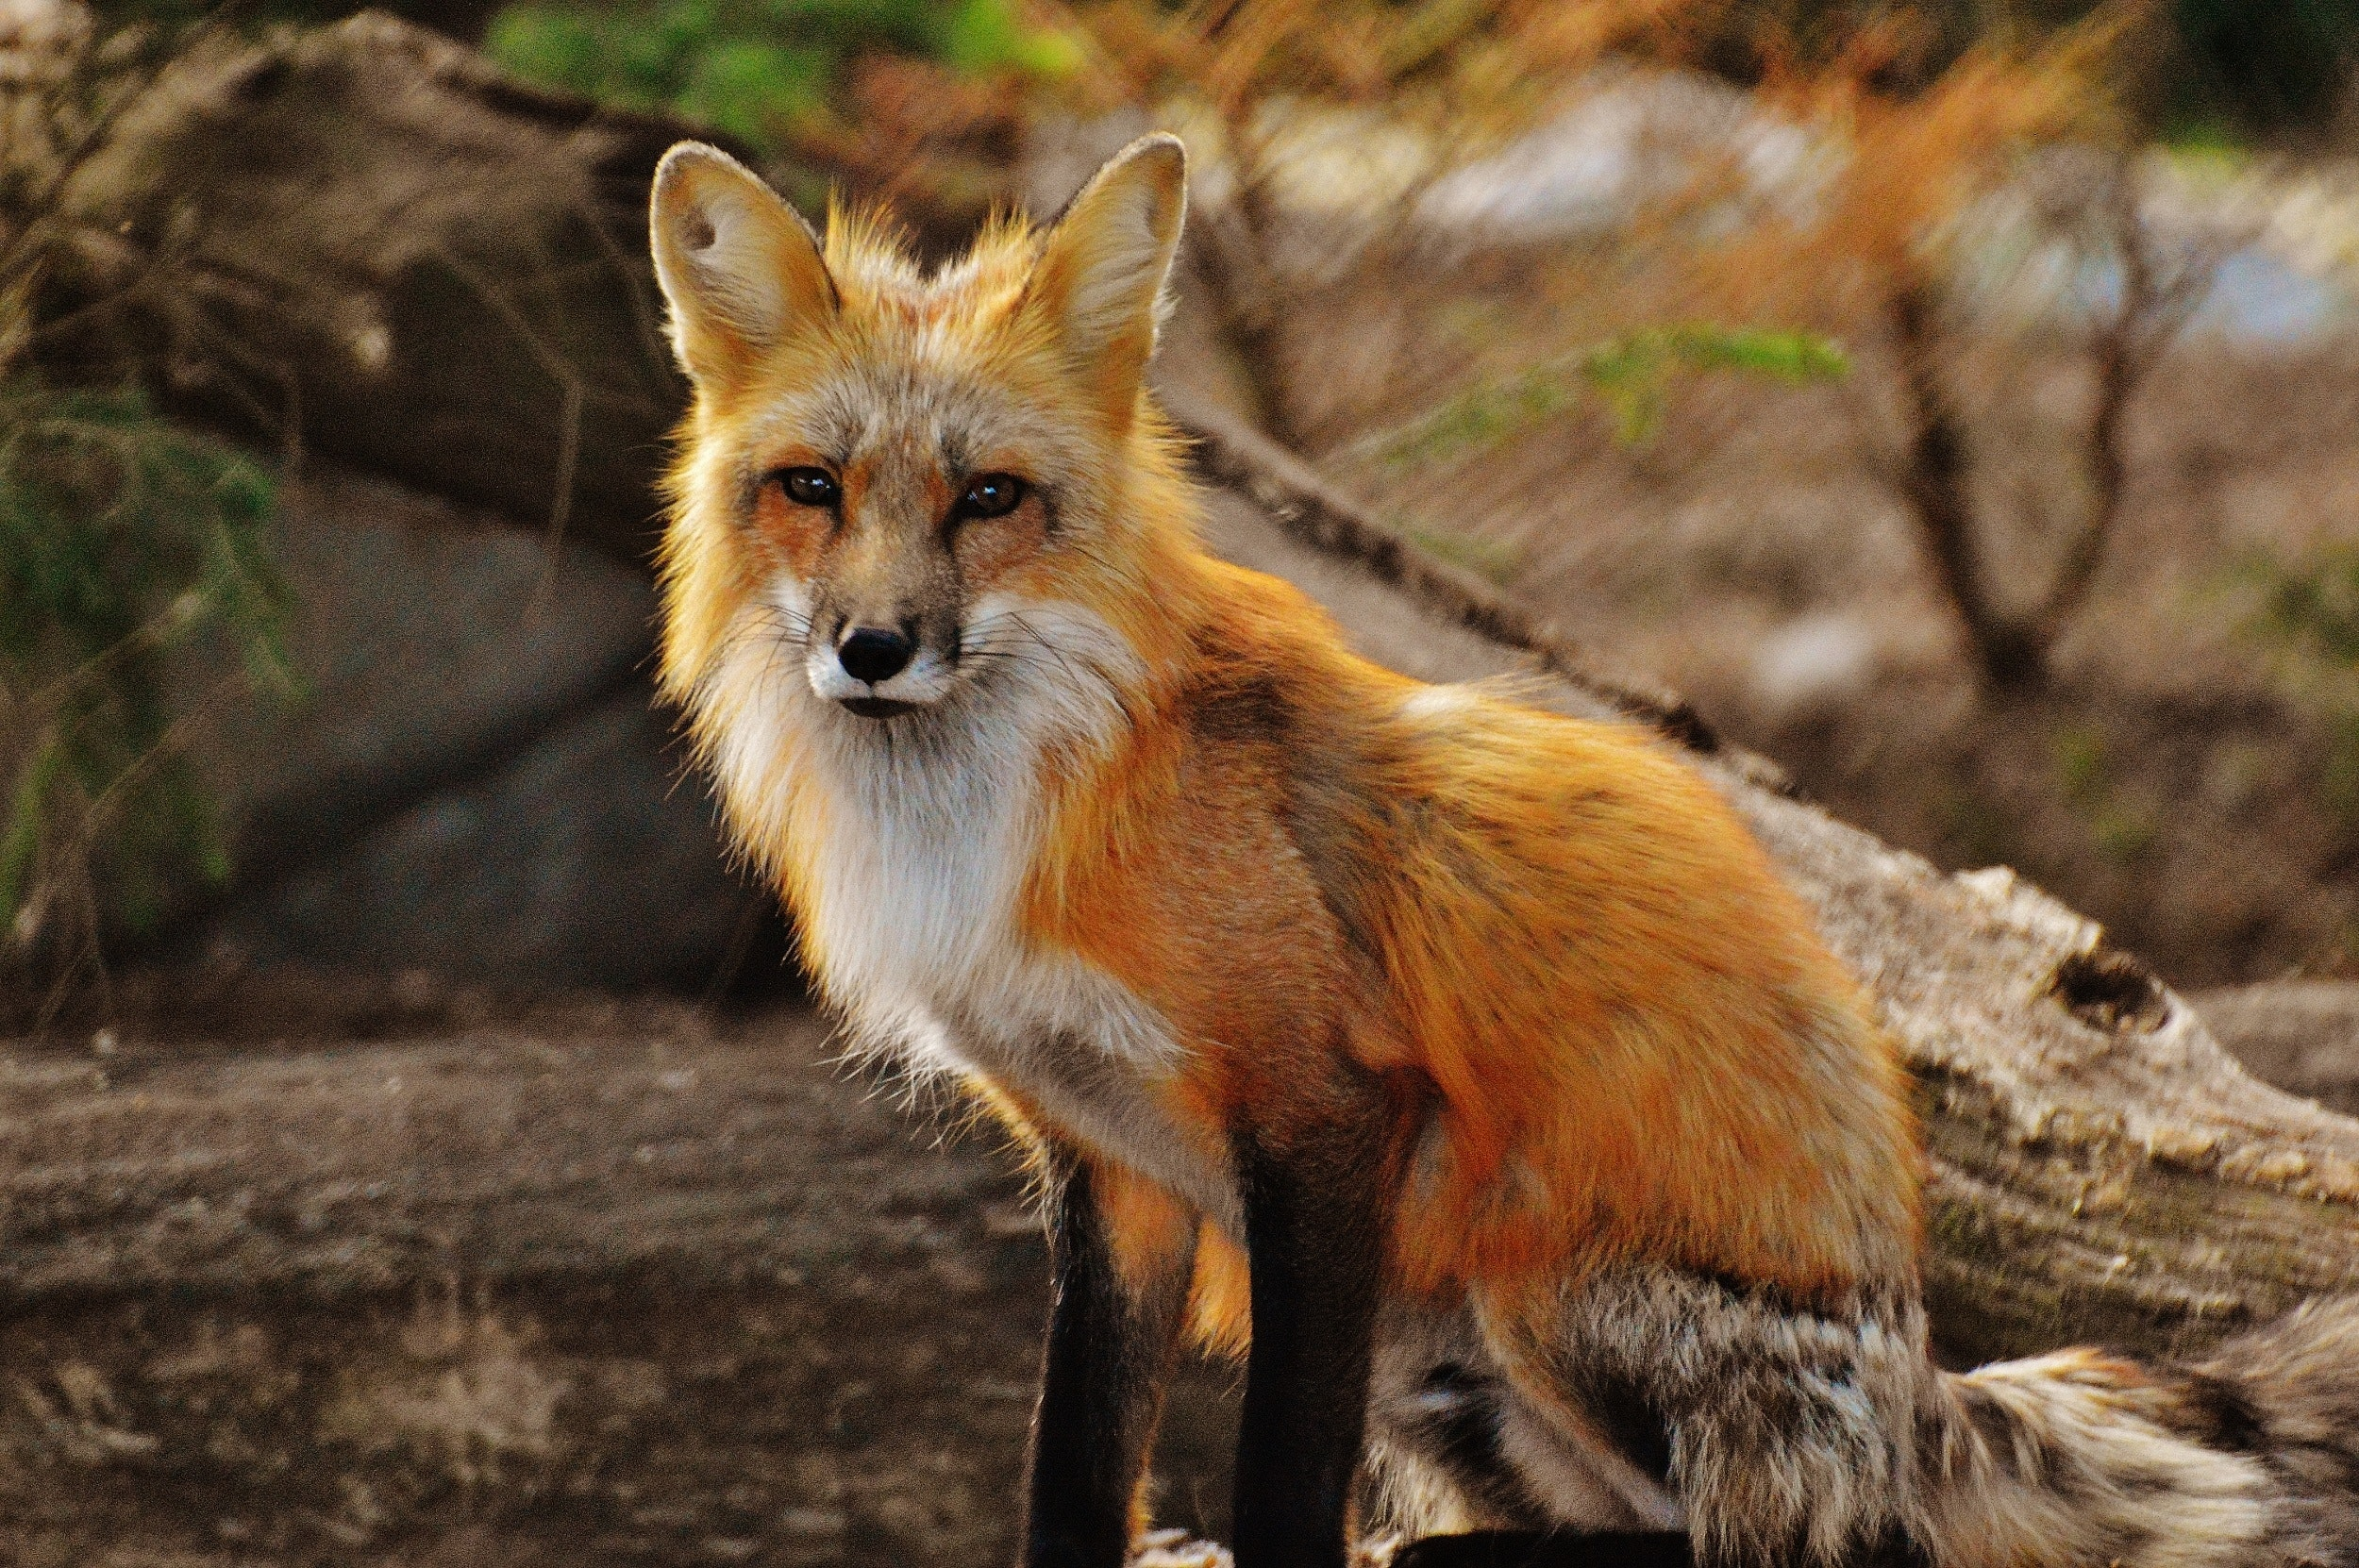 Brown and White Fox on Green Grass Land · Free Stock Photo